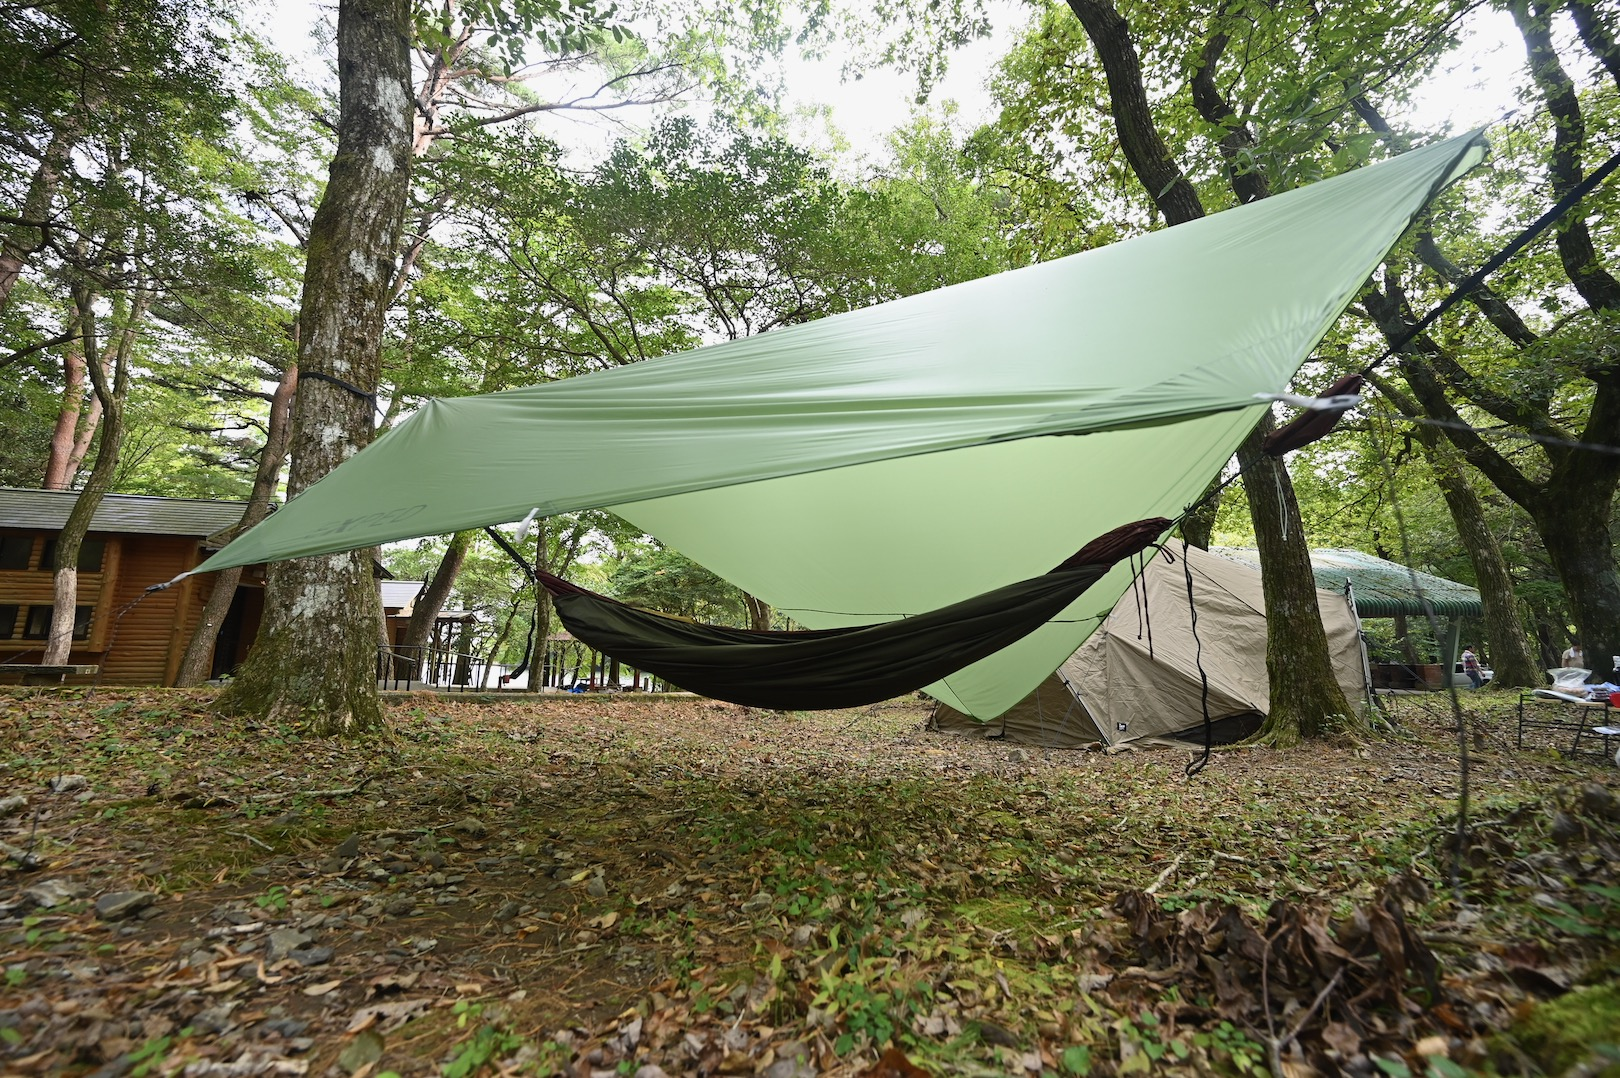 ウキグモ Light & ウンカイ Light & Hammock Trekking Tarp